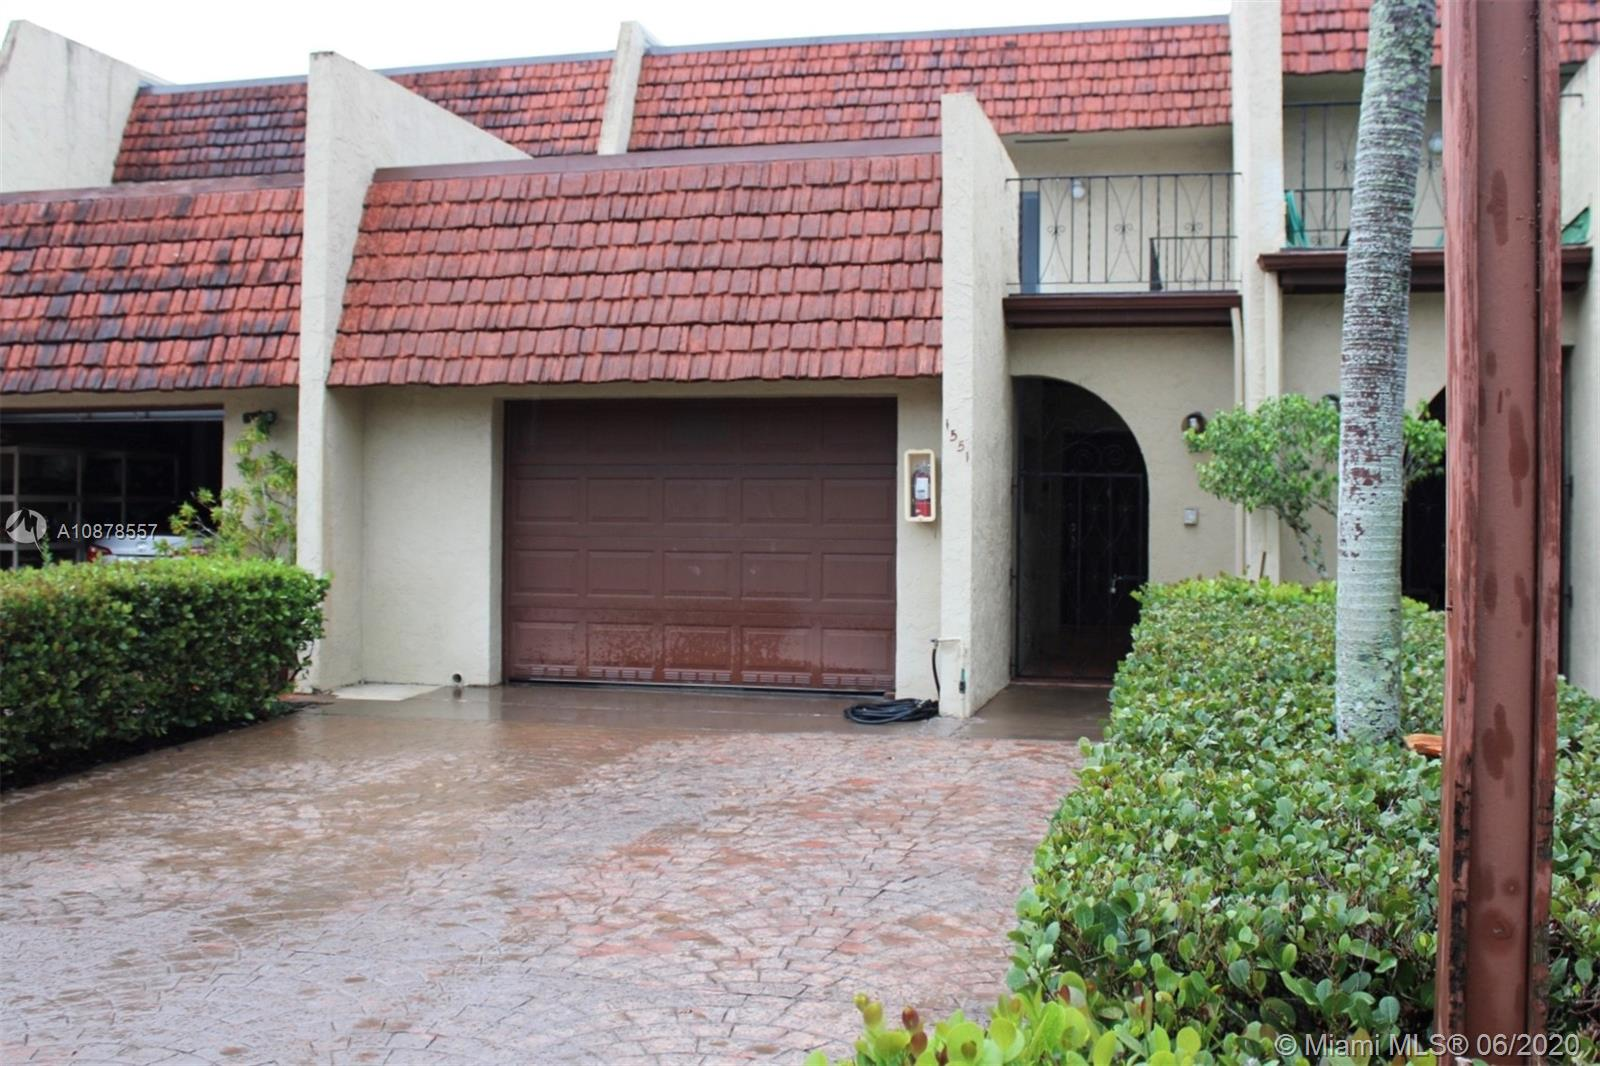 Rare Find!! Spacious 2/2.5 Town Home in the heart of Pembroke Pines! The home features an open floor plan with numerous upgrades to the bathrooms and kitchen that include stainless steel appliances.  Seller spent over $7,500 on a recent garage renovation and $8500 on new impact windows and doors.  Large balcony area from the master bedroom, Fenced backyard with pavers excellent for entertaining guests. Great location in Pembroke Lakes just five minutes to Pembroke Lakes Mall and zoned for excellent A+ Schools that includes Pembroke Lakes Elementary!  Move in Ready, will go fast!!!